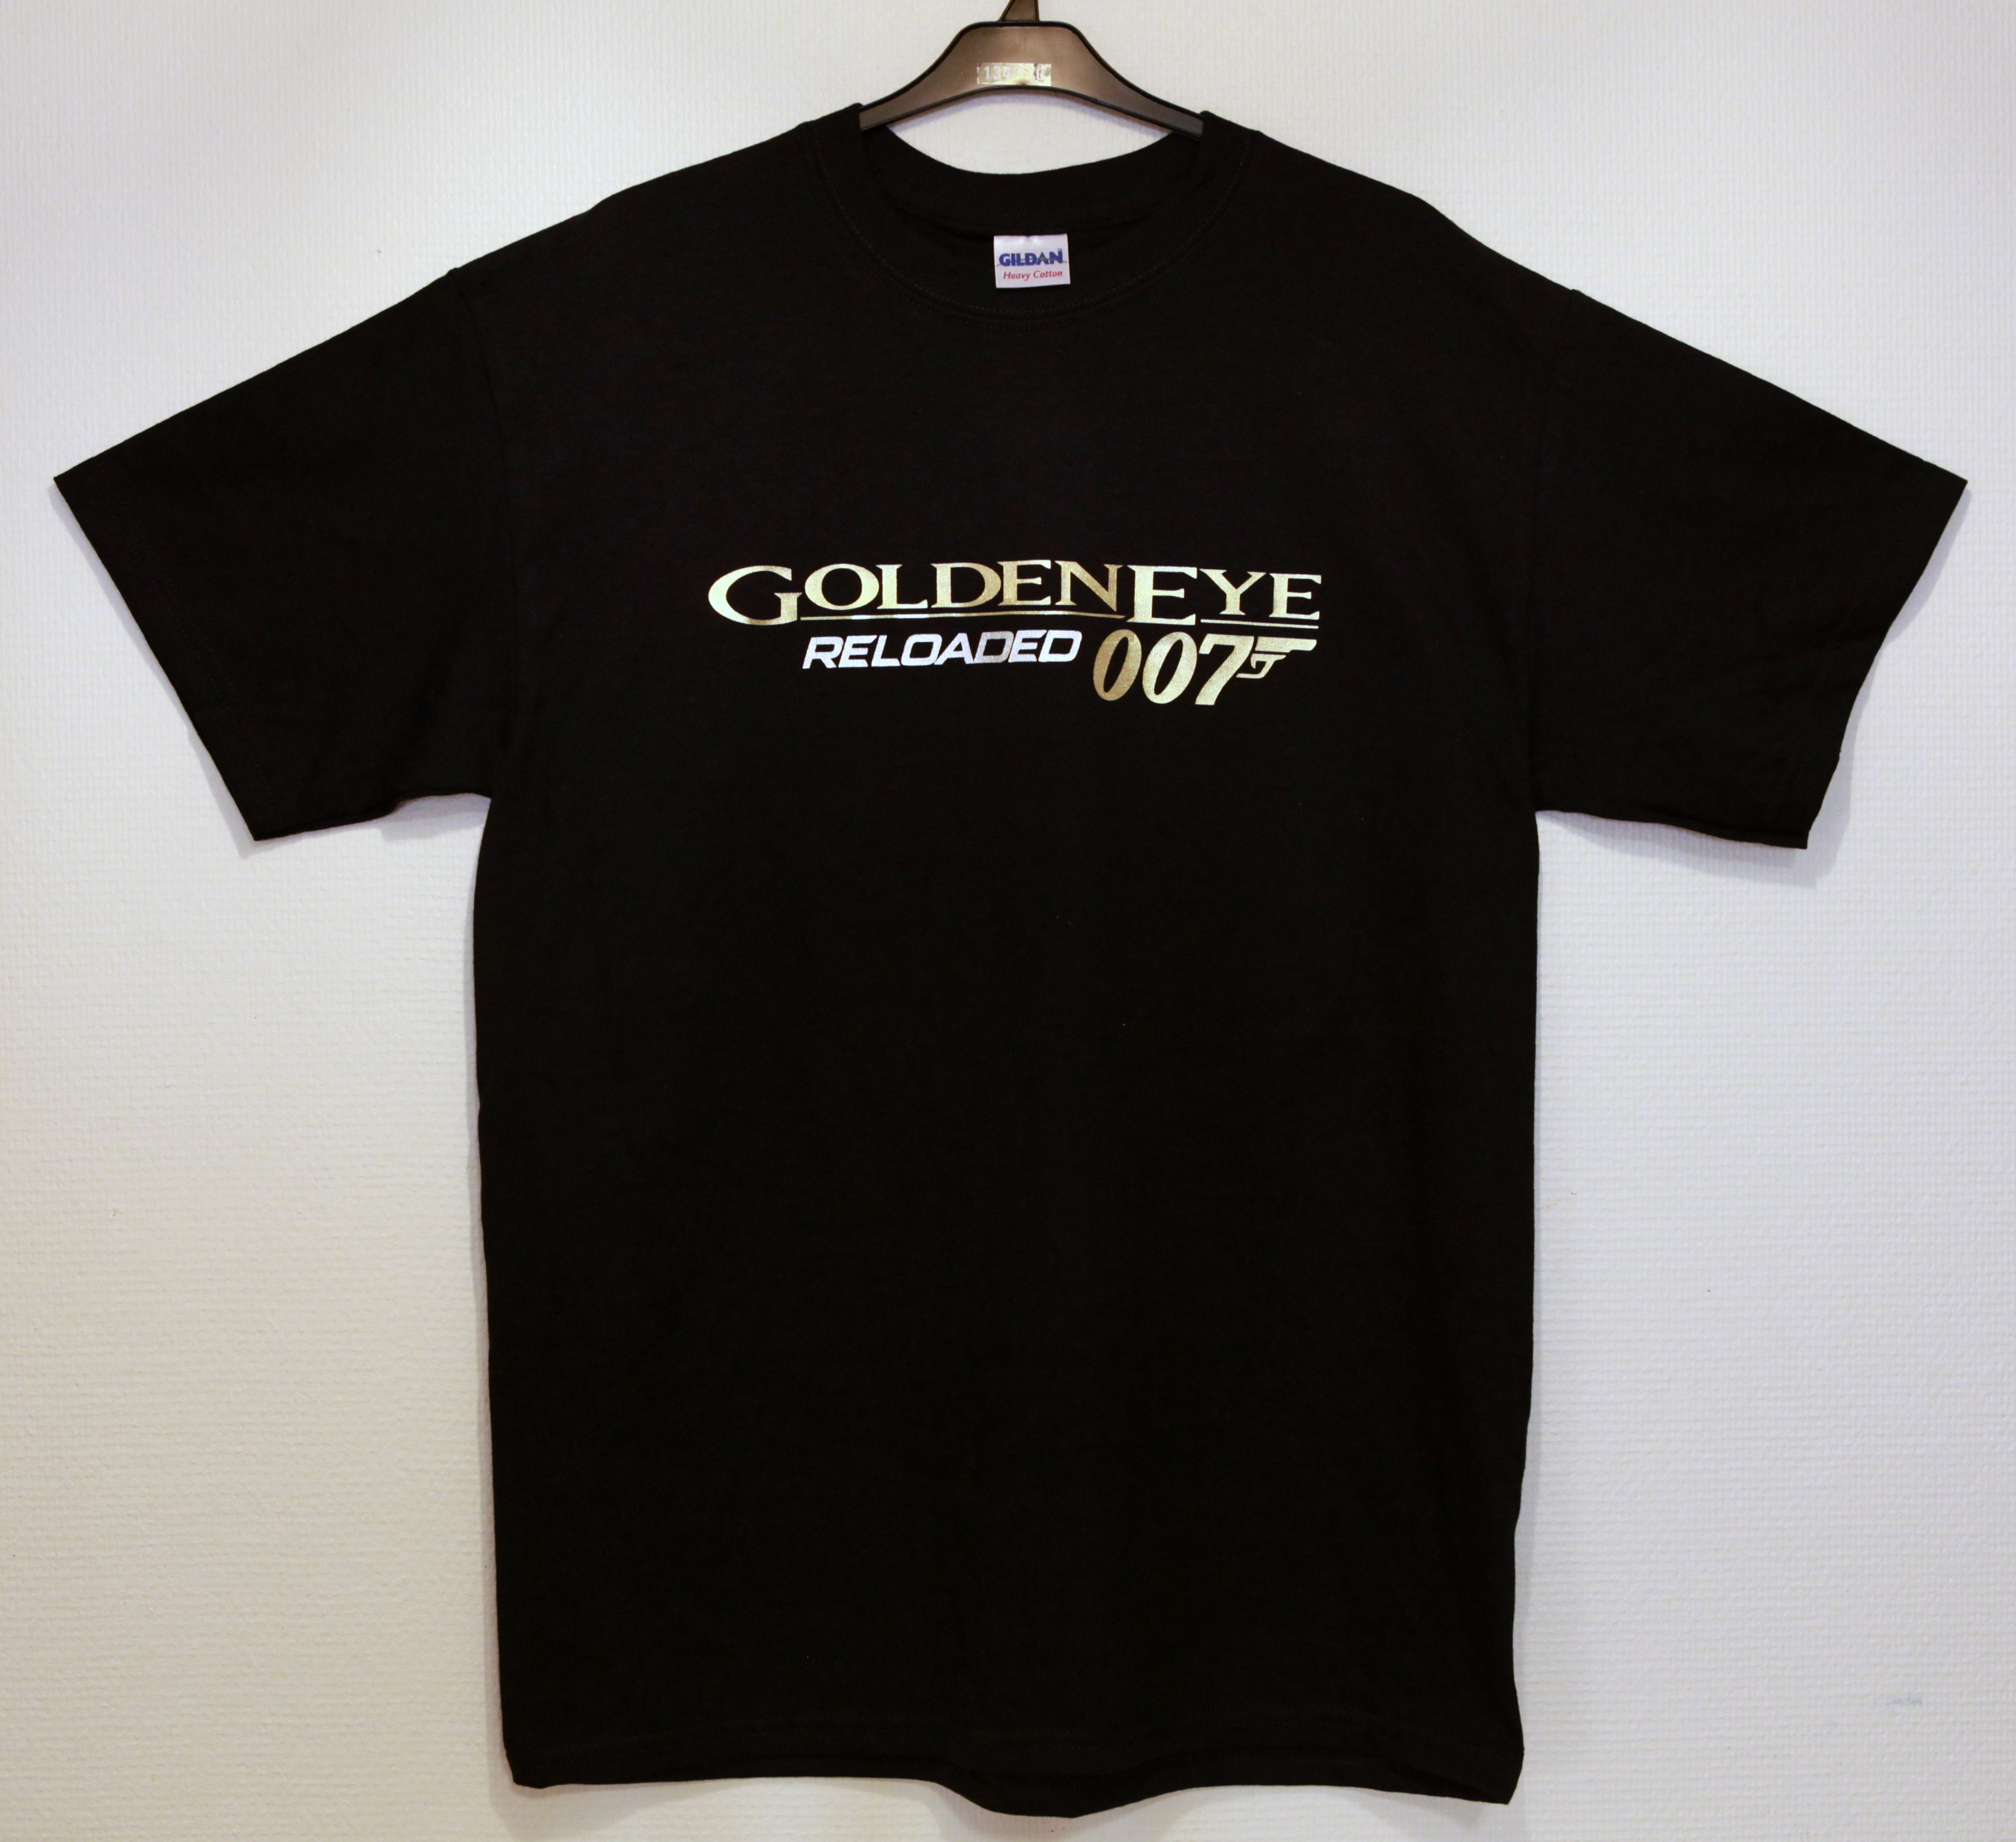 To celebrate the release of GoldenEye 007: Reloaded, our friends at  Activision have given us , official GoldenEye 007: Reloaded t-shirts,  cocktail shakers ...